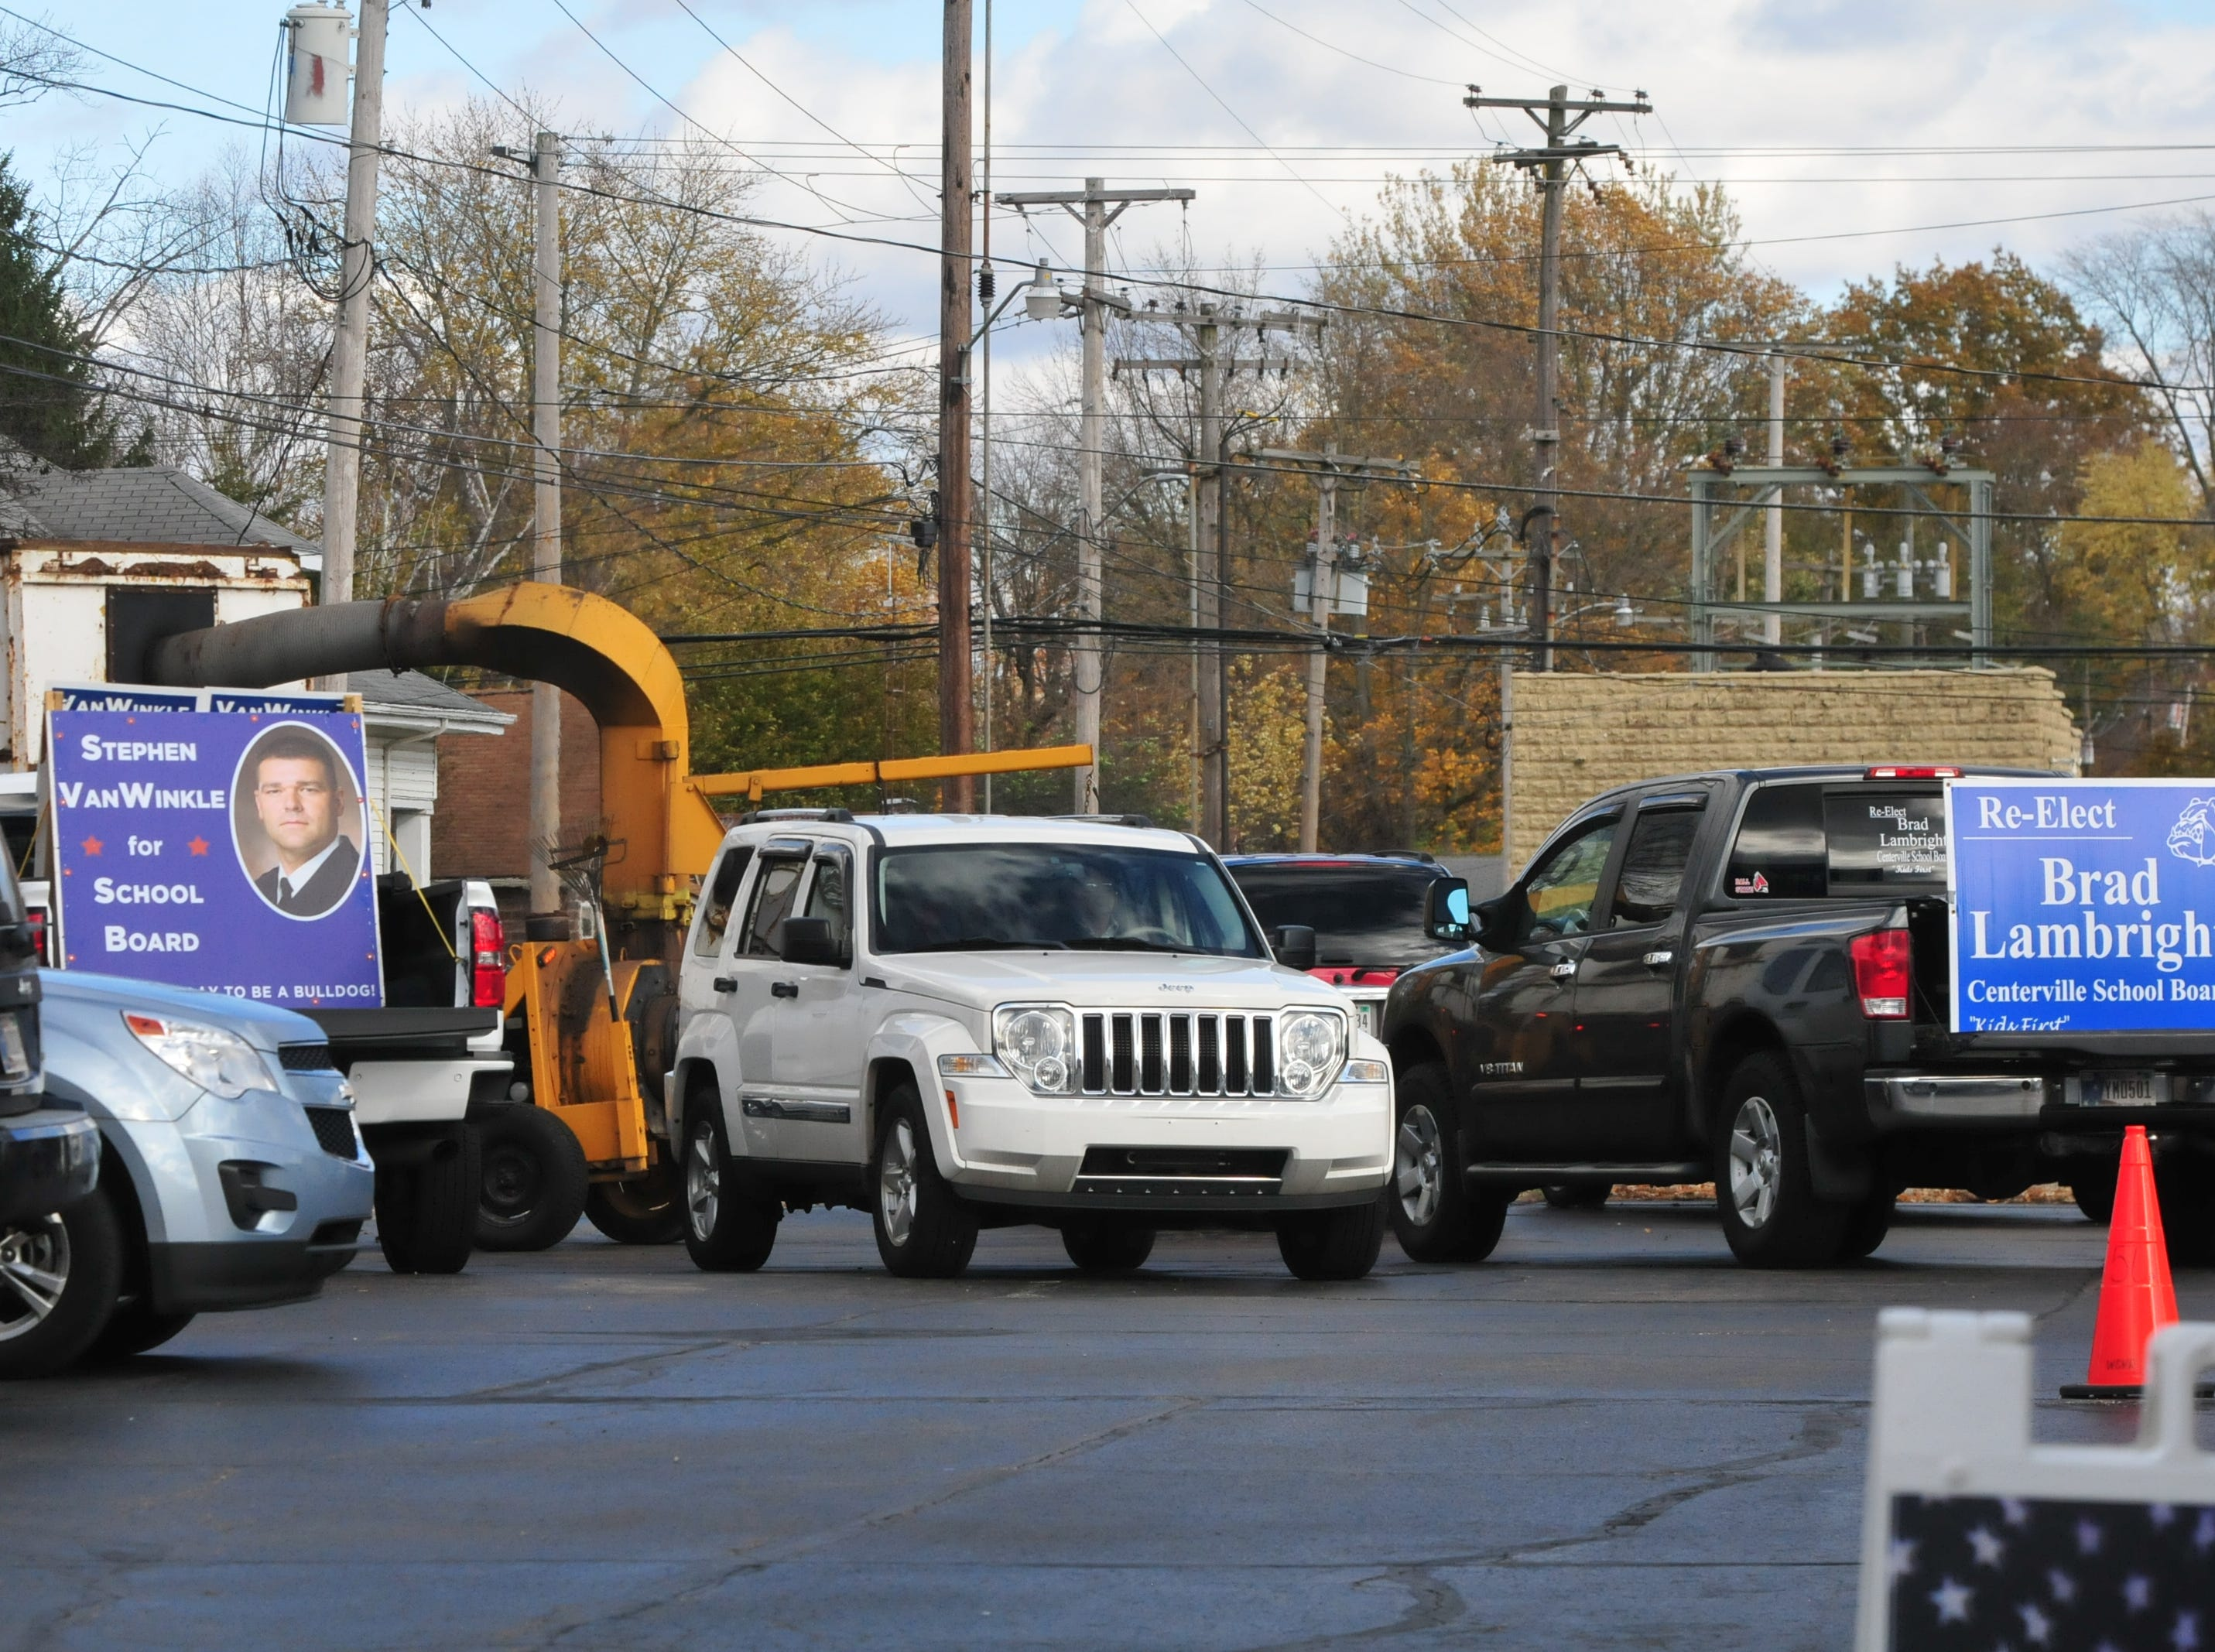 Signs for dueling school board candidates sit in the back of trucks in the parking lot outside the Centerville Christian Church Family Center on Election Day, Nov. 6, 2018.